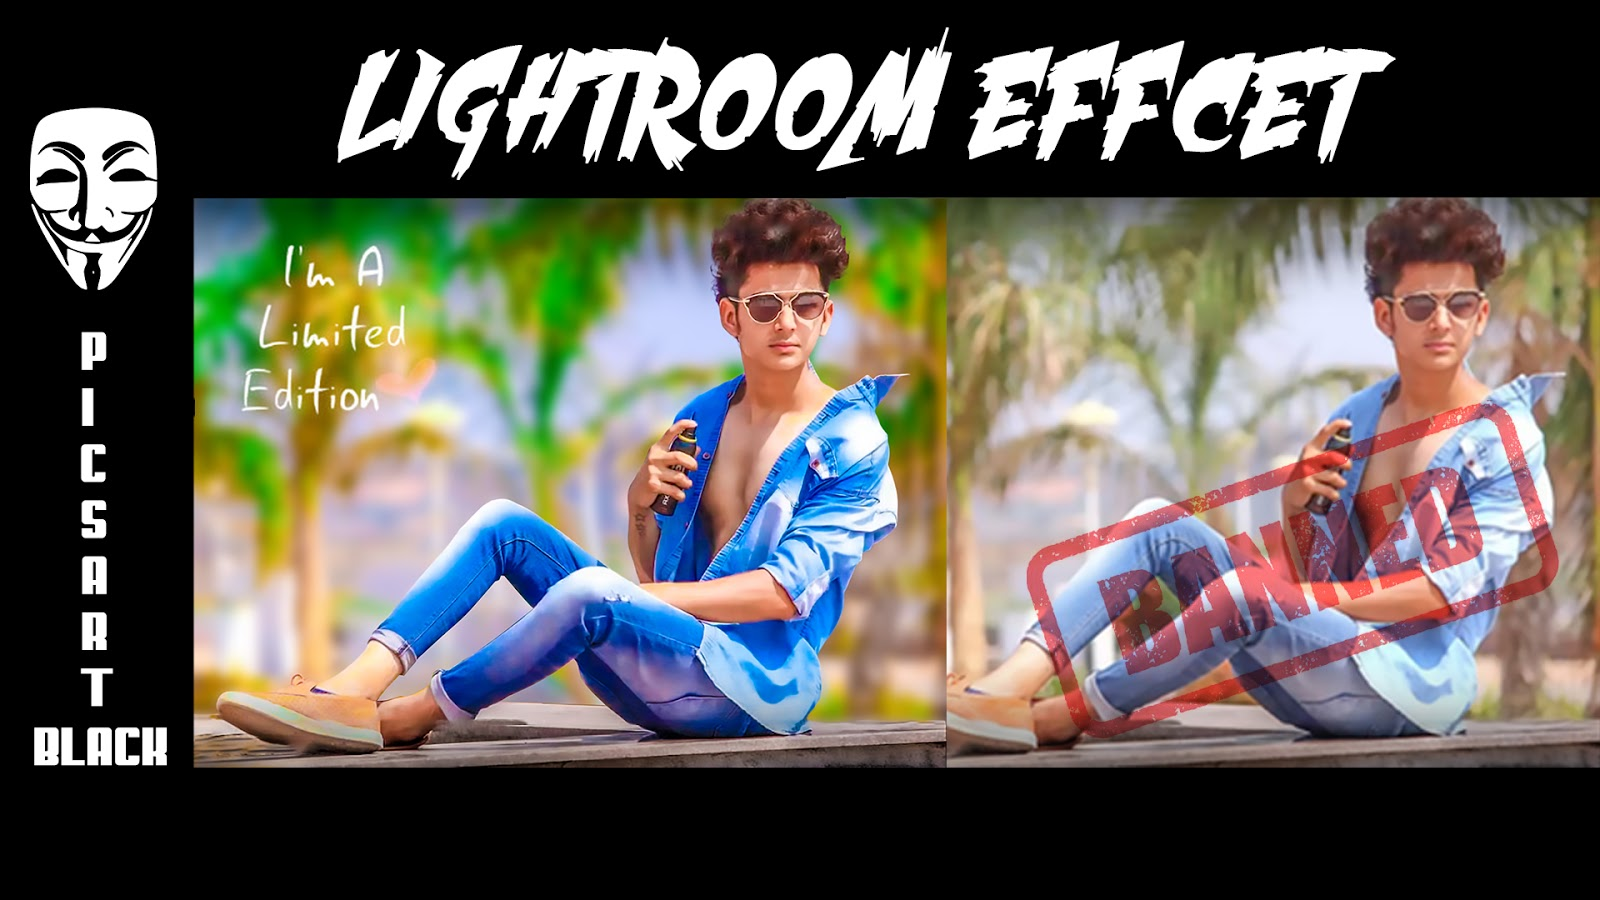 LIGHTROOM EFFECT PNG IMAGE BACKGROUND DOWNLOAD